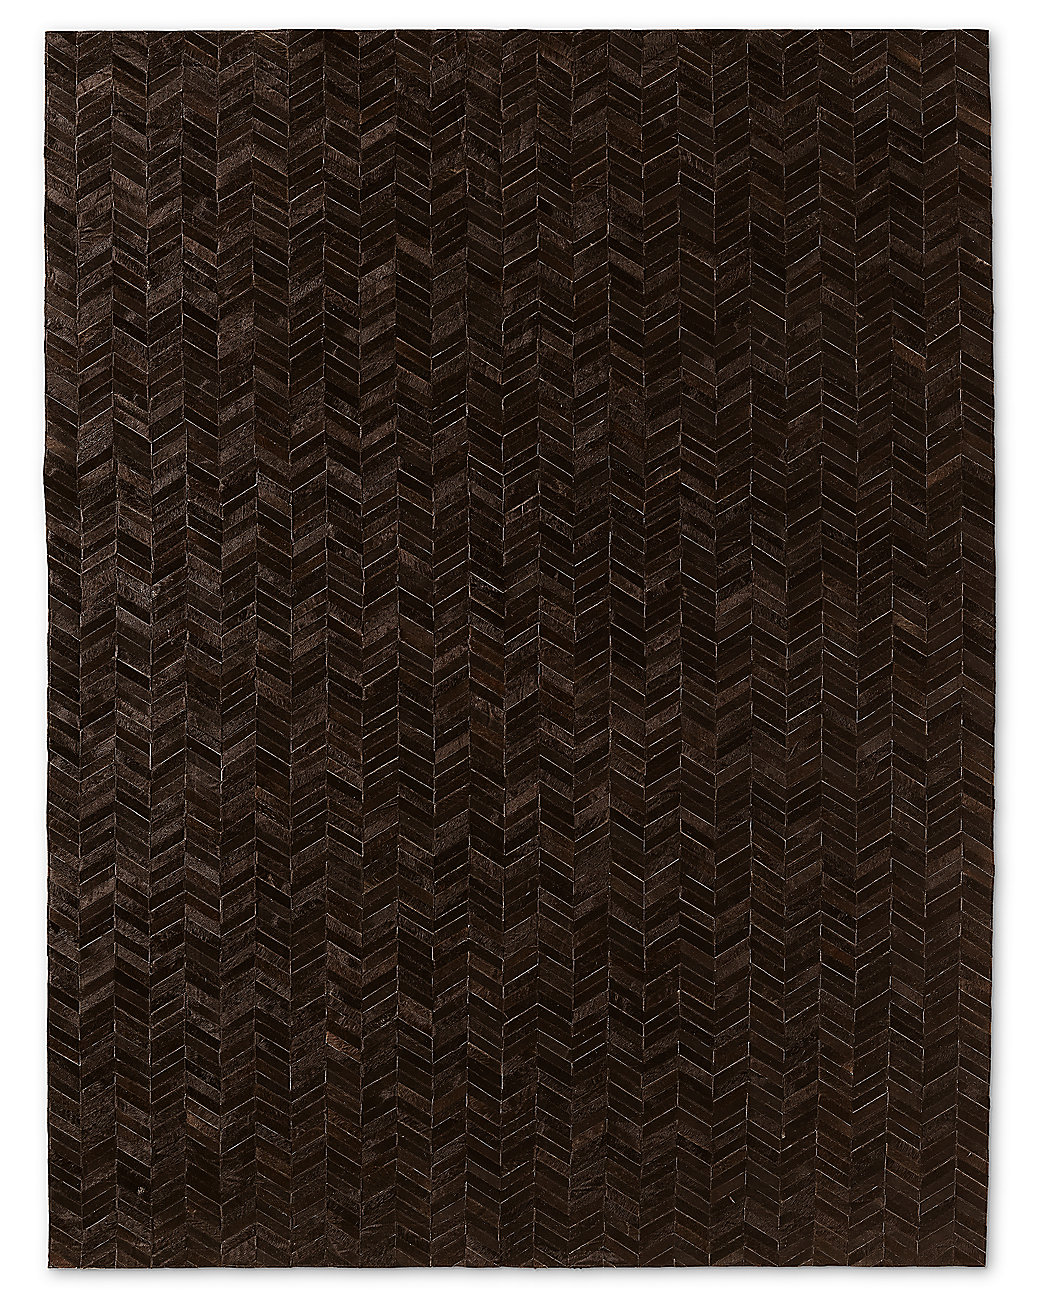 Chevron Cowhide Rug - Chocolate